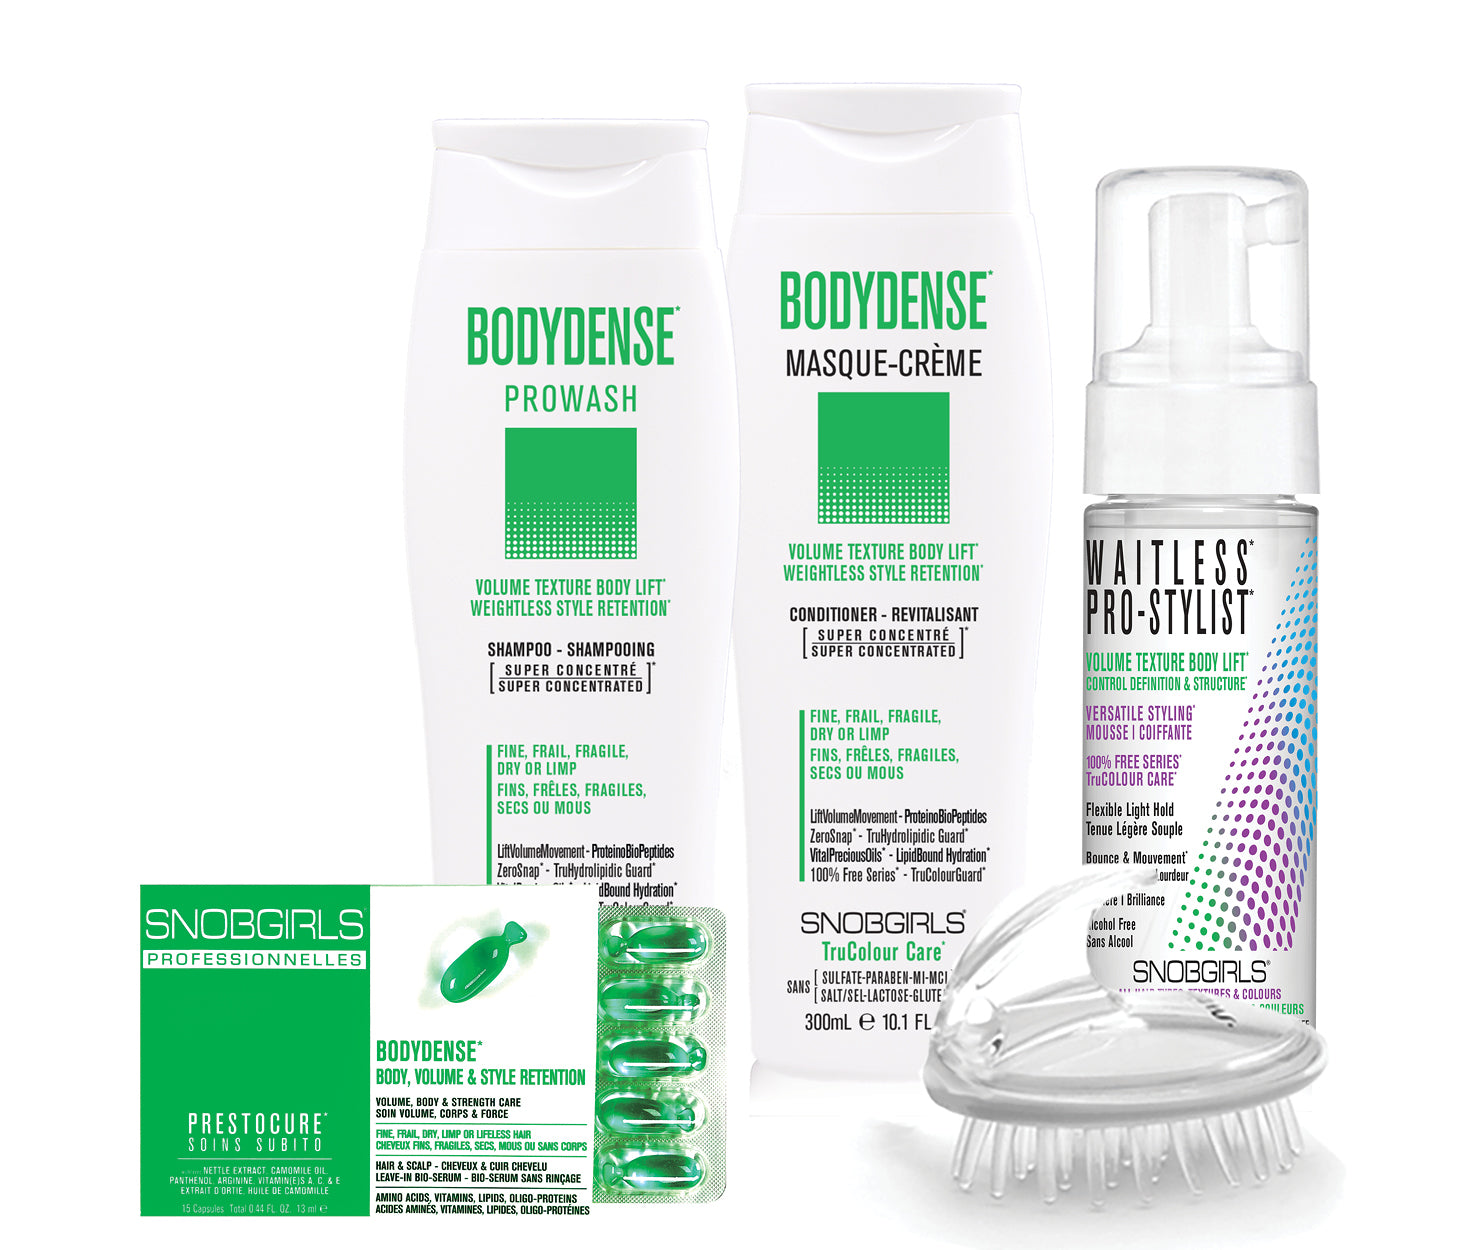 BODYDENSE BOX VOLUME TEXTURE BODY LIFT WEIGHTLESS STYLE RETENTION Bundle